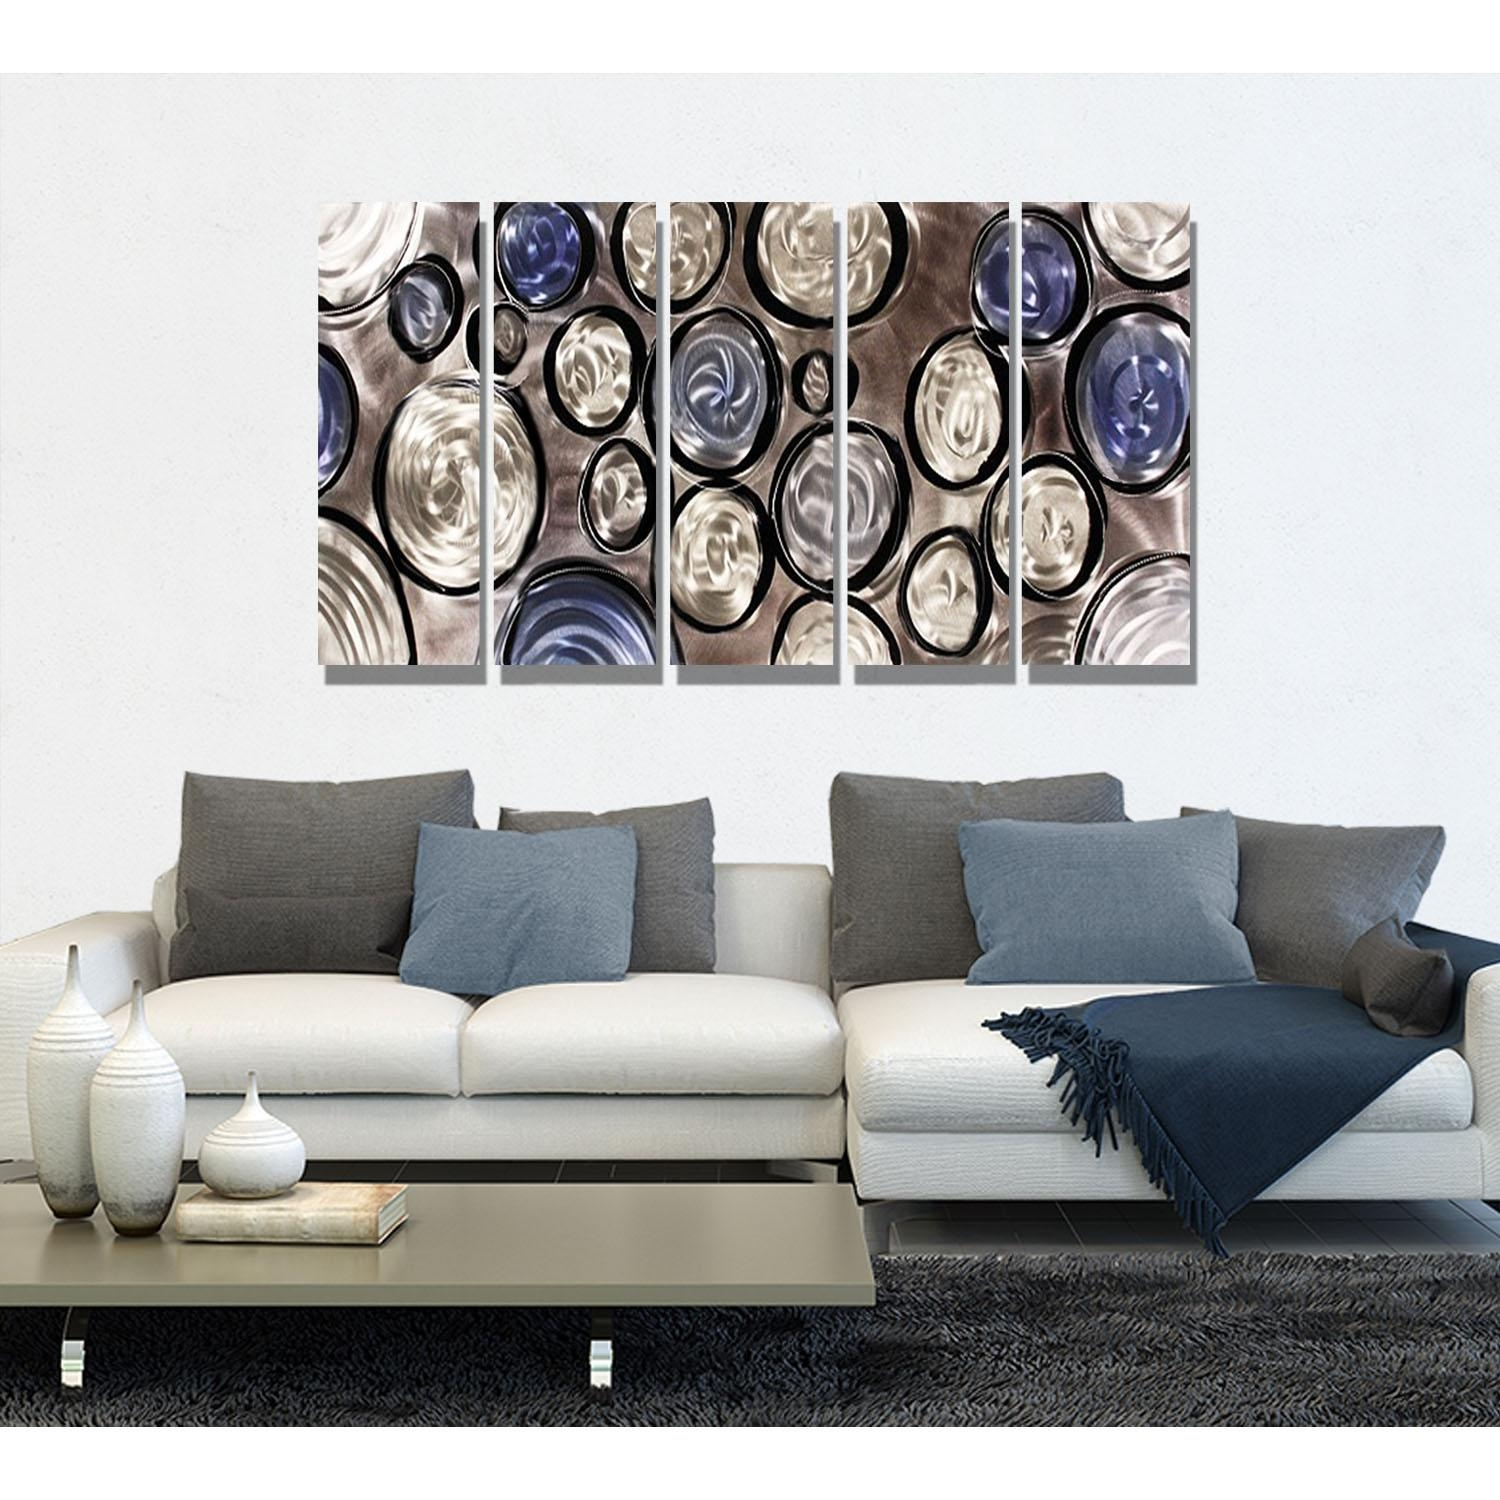 Hygge - Silver, Blue And Black Metal Wall Art - 5 Panel Wall Décor in Blue And Silver Wall Art